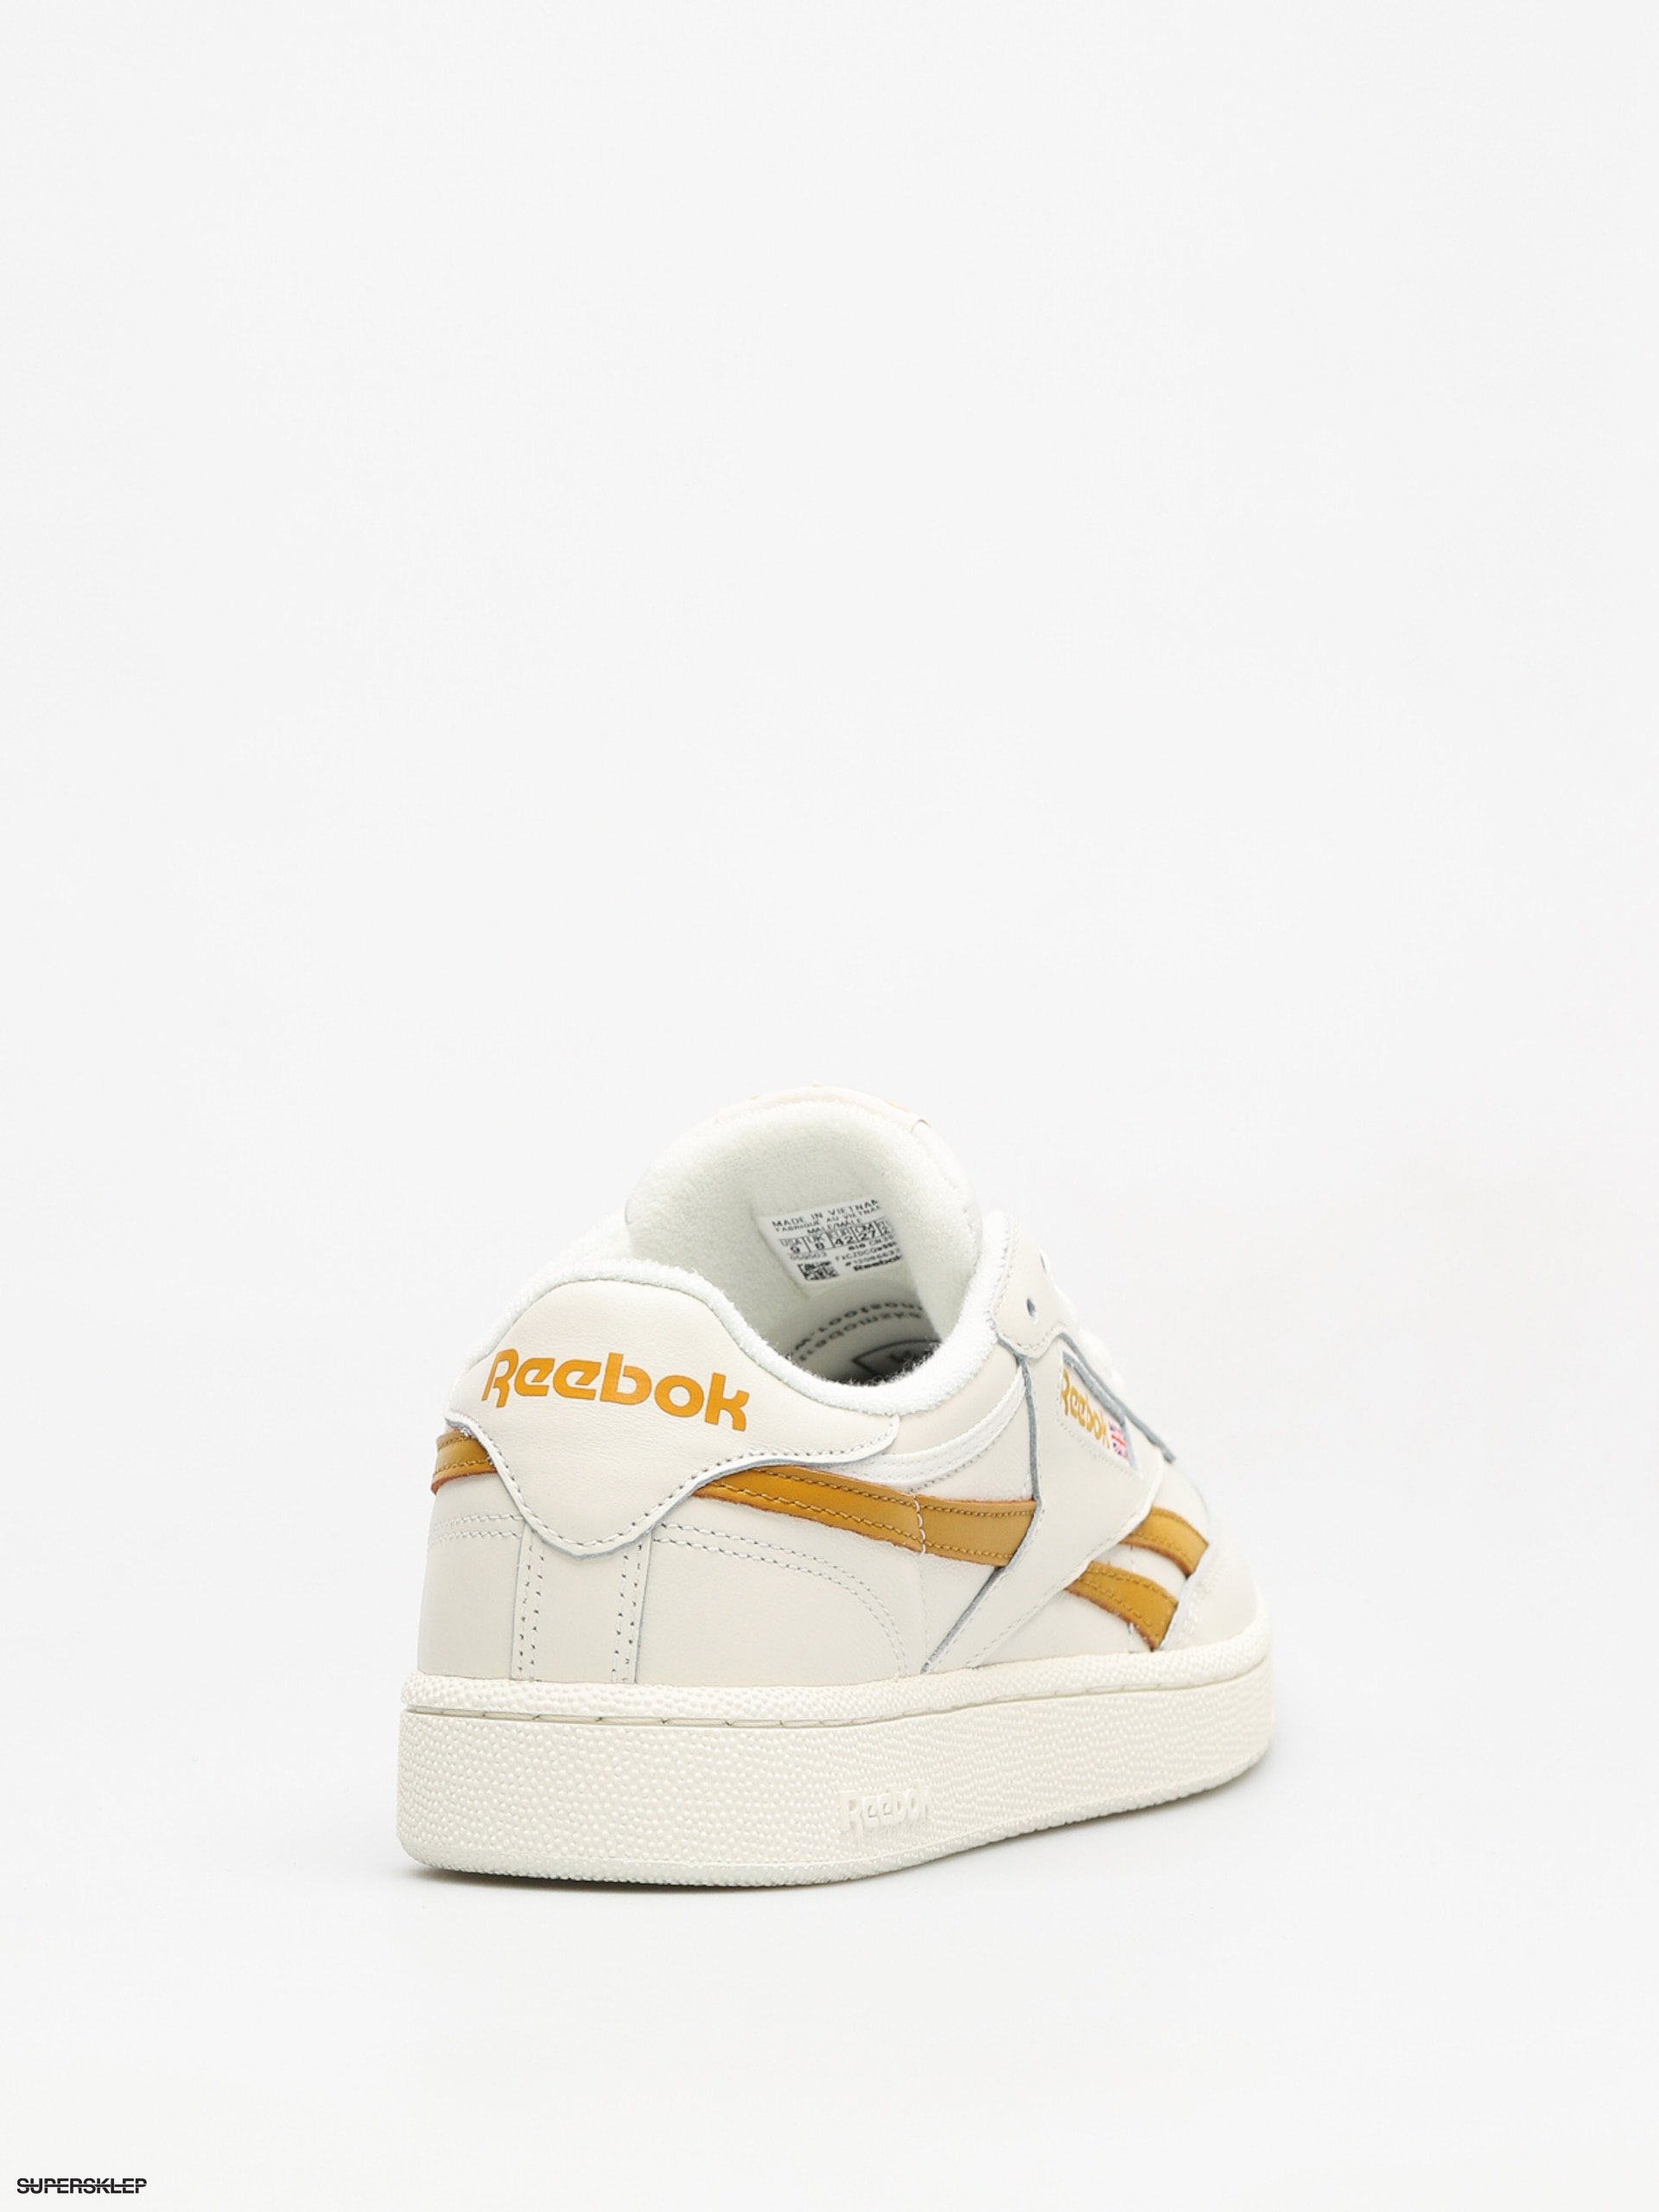 Buy online Reebok Classic Leather MU in Chalk Wild Khaki